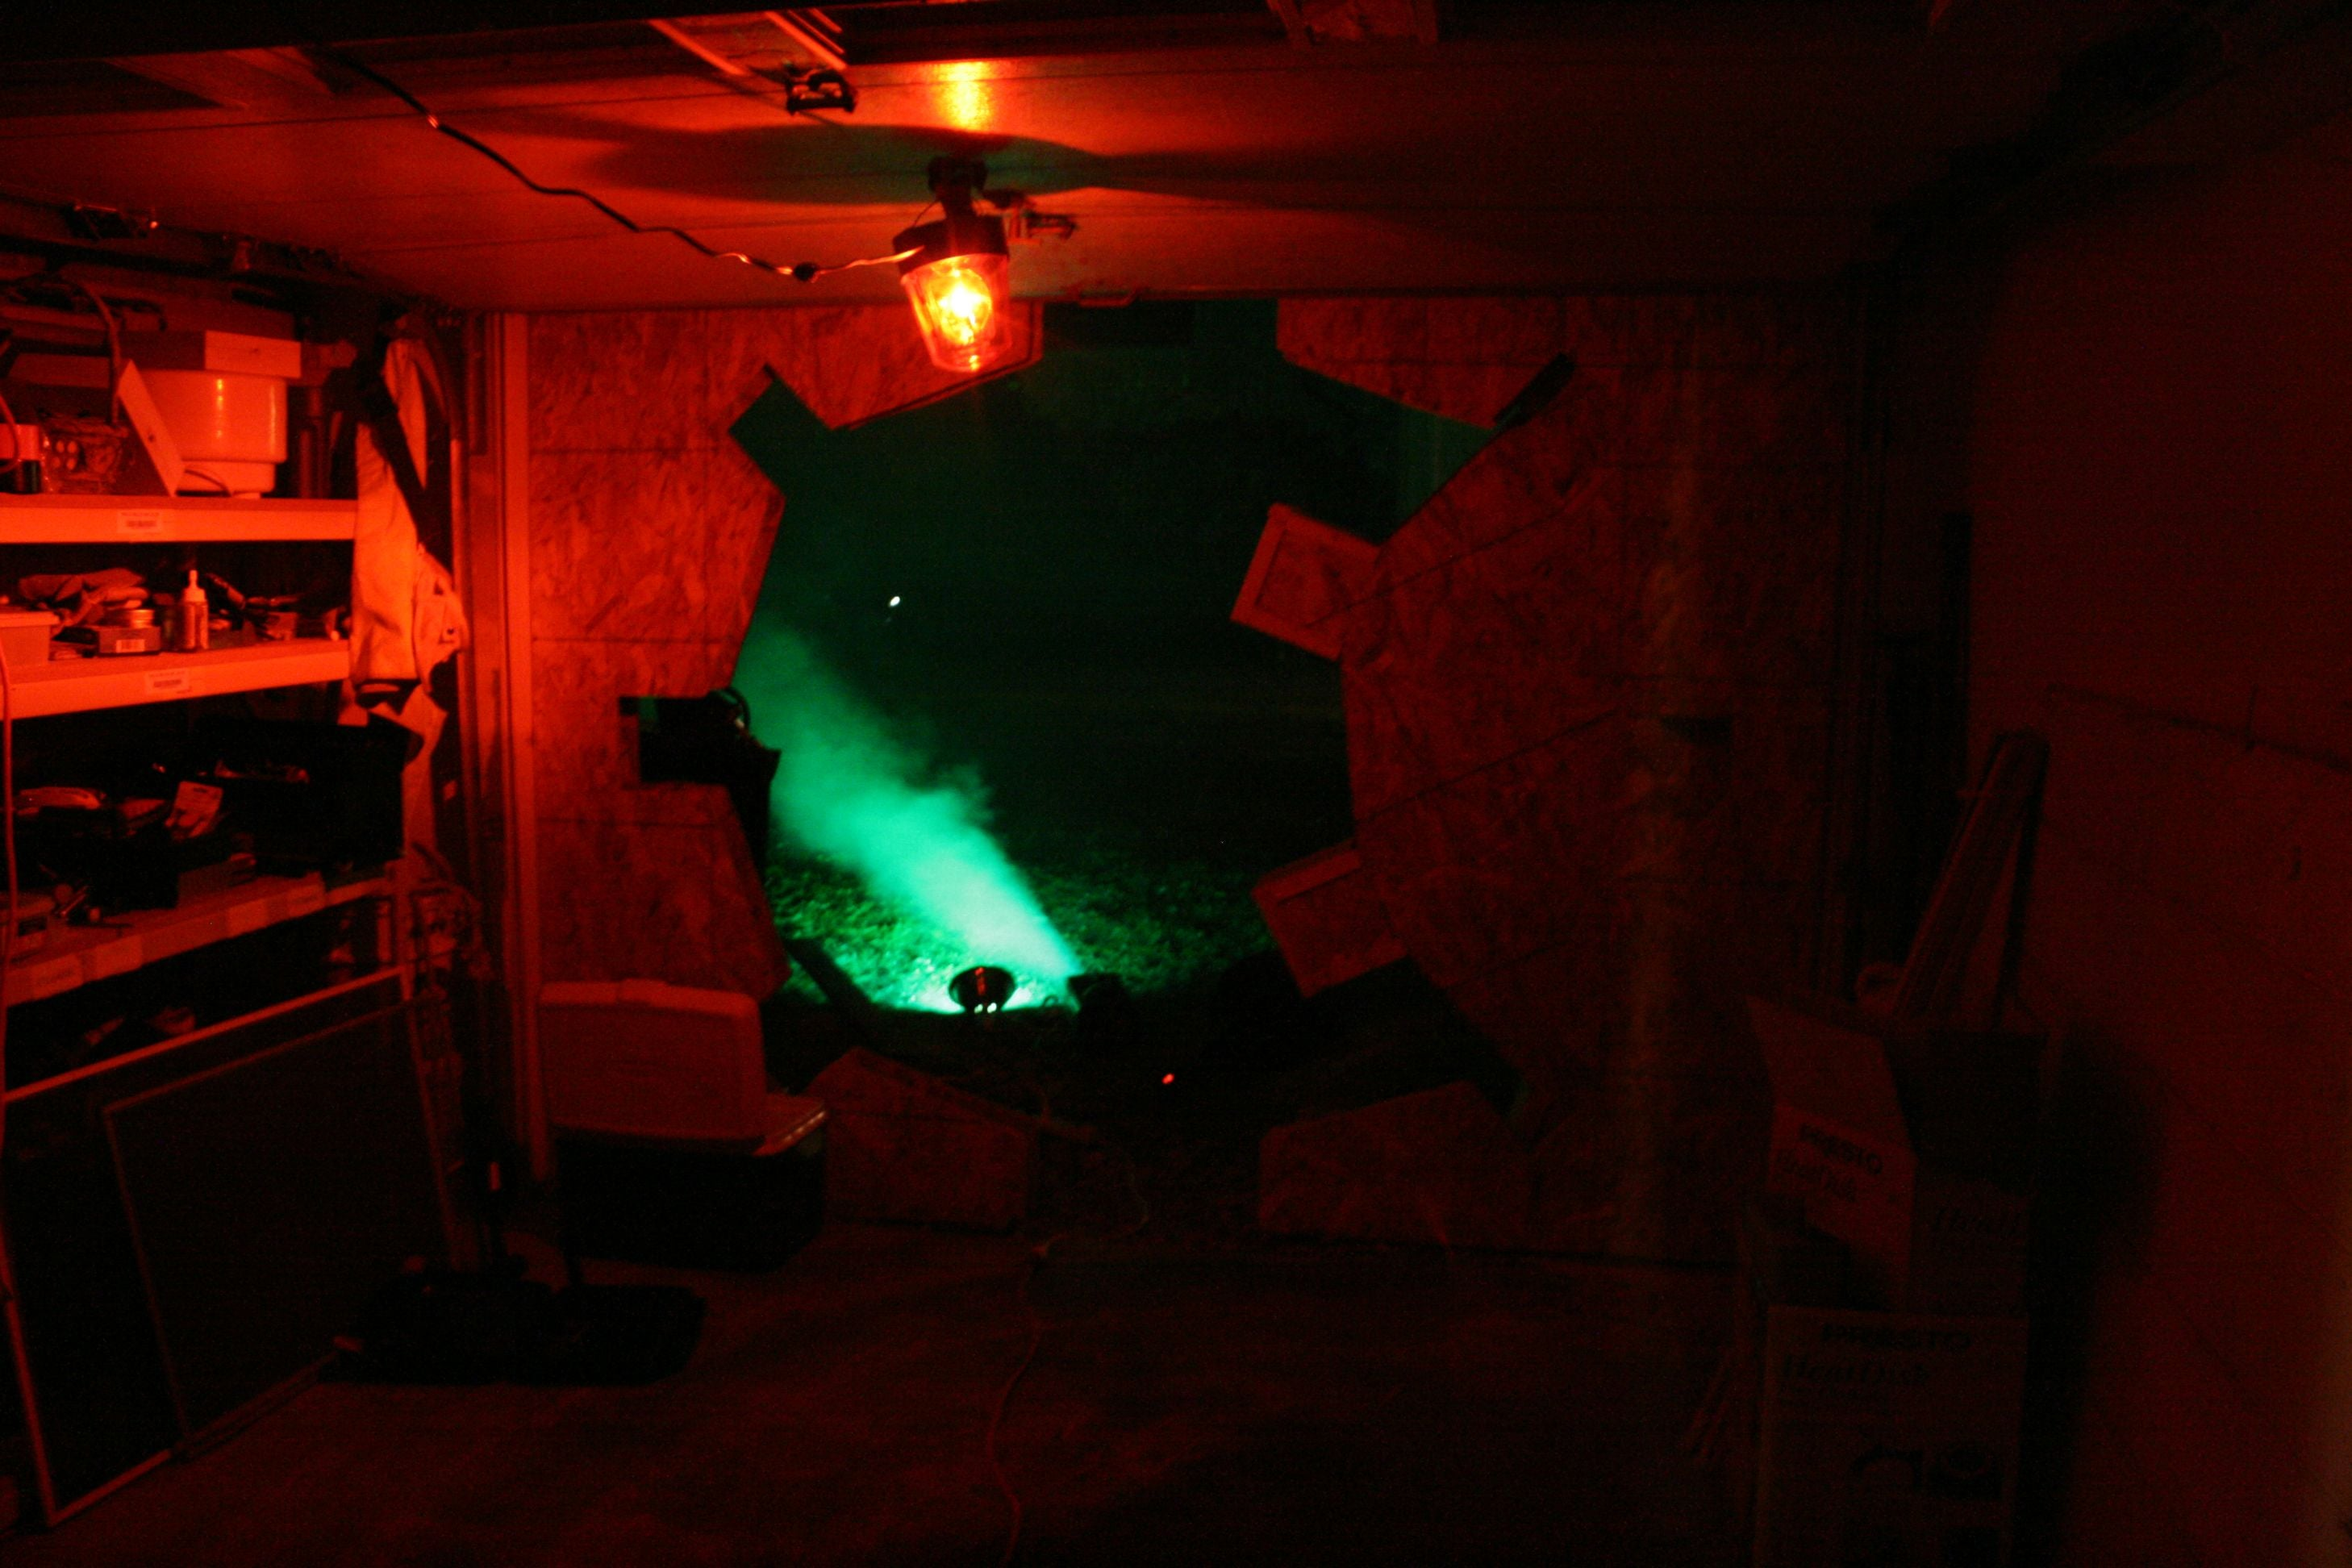 Man Turns Basement Into Fallout Vault For Birthday Party